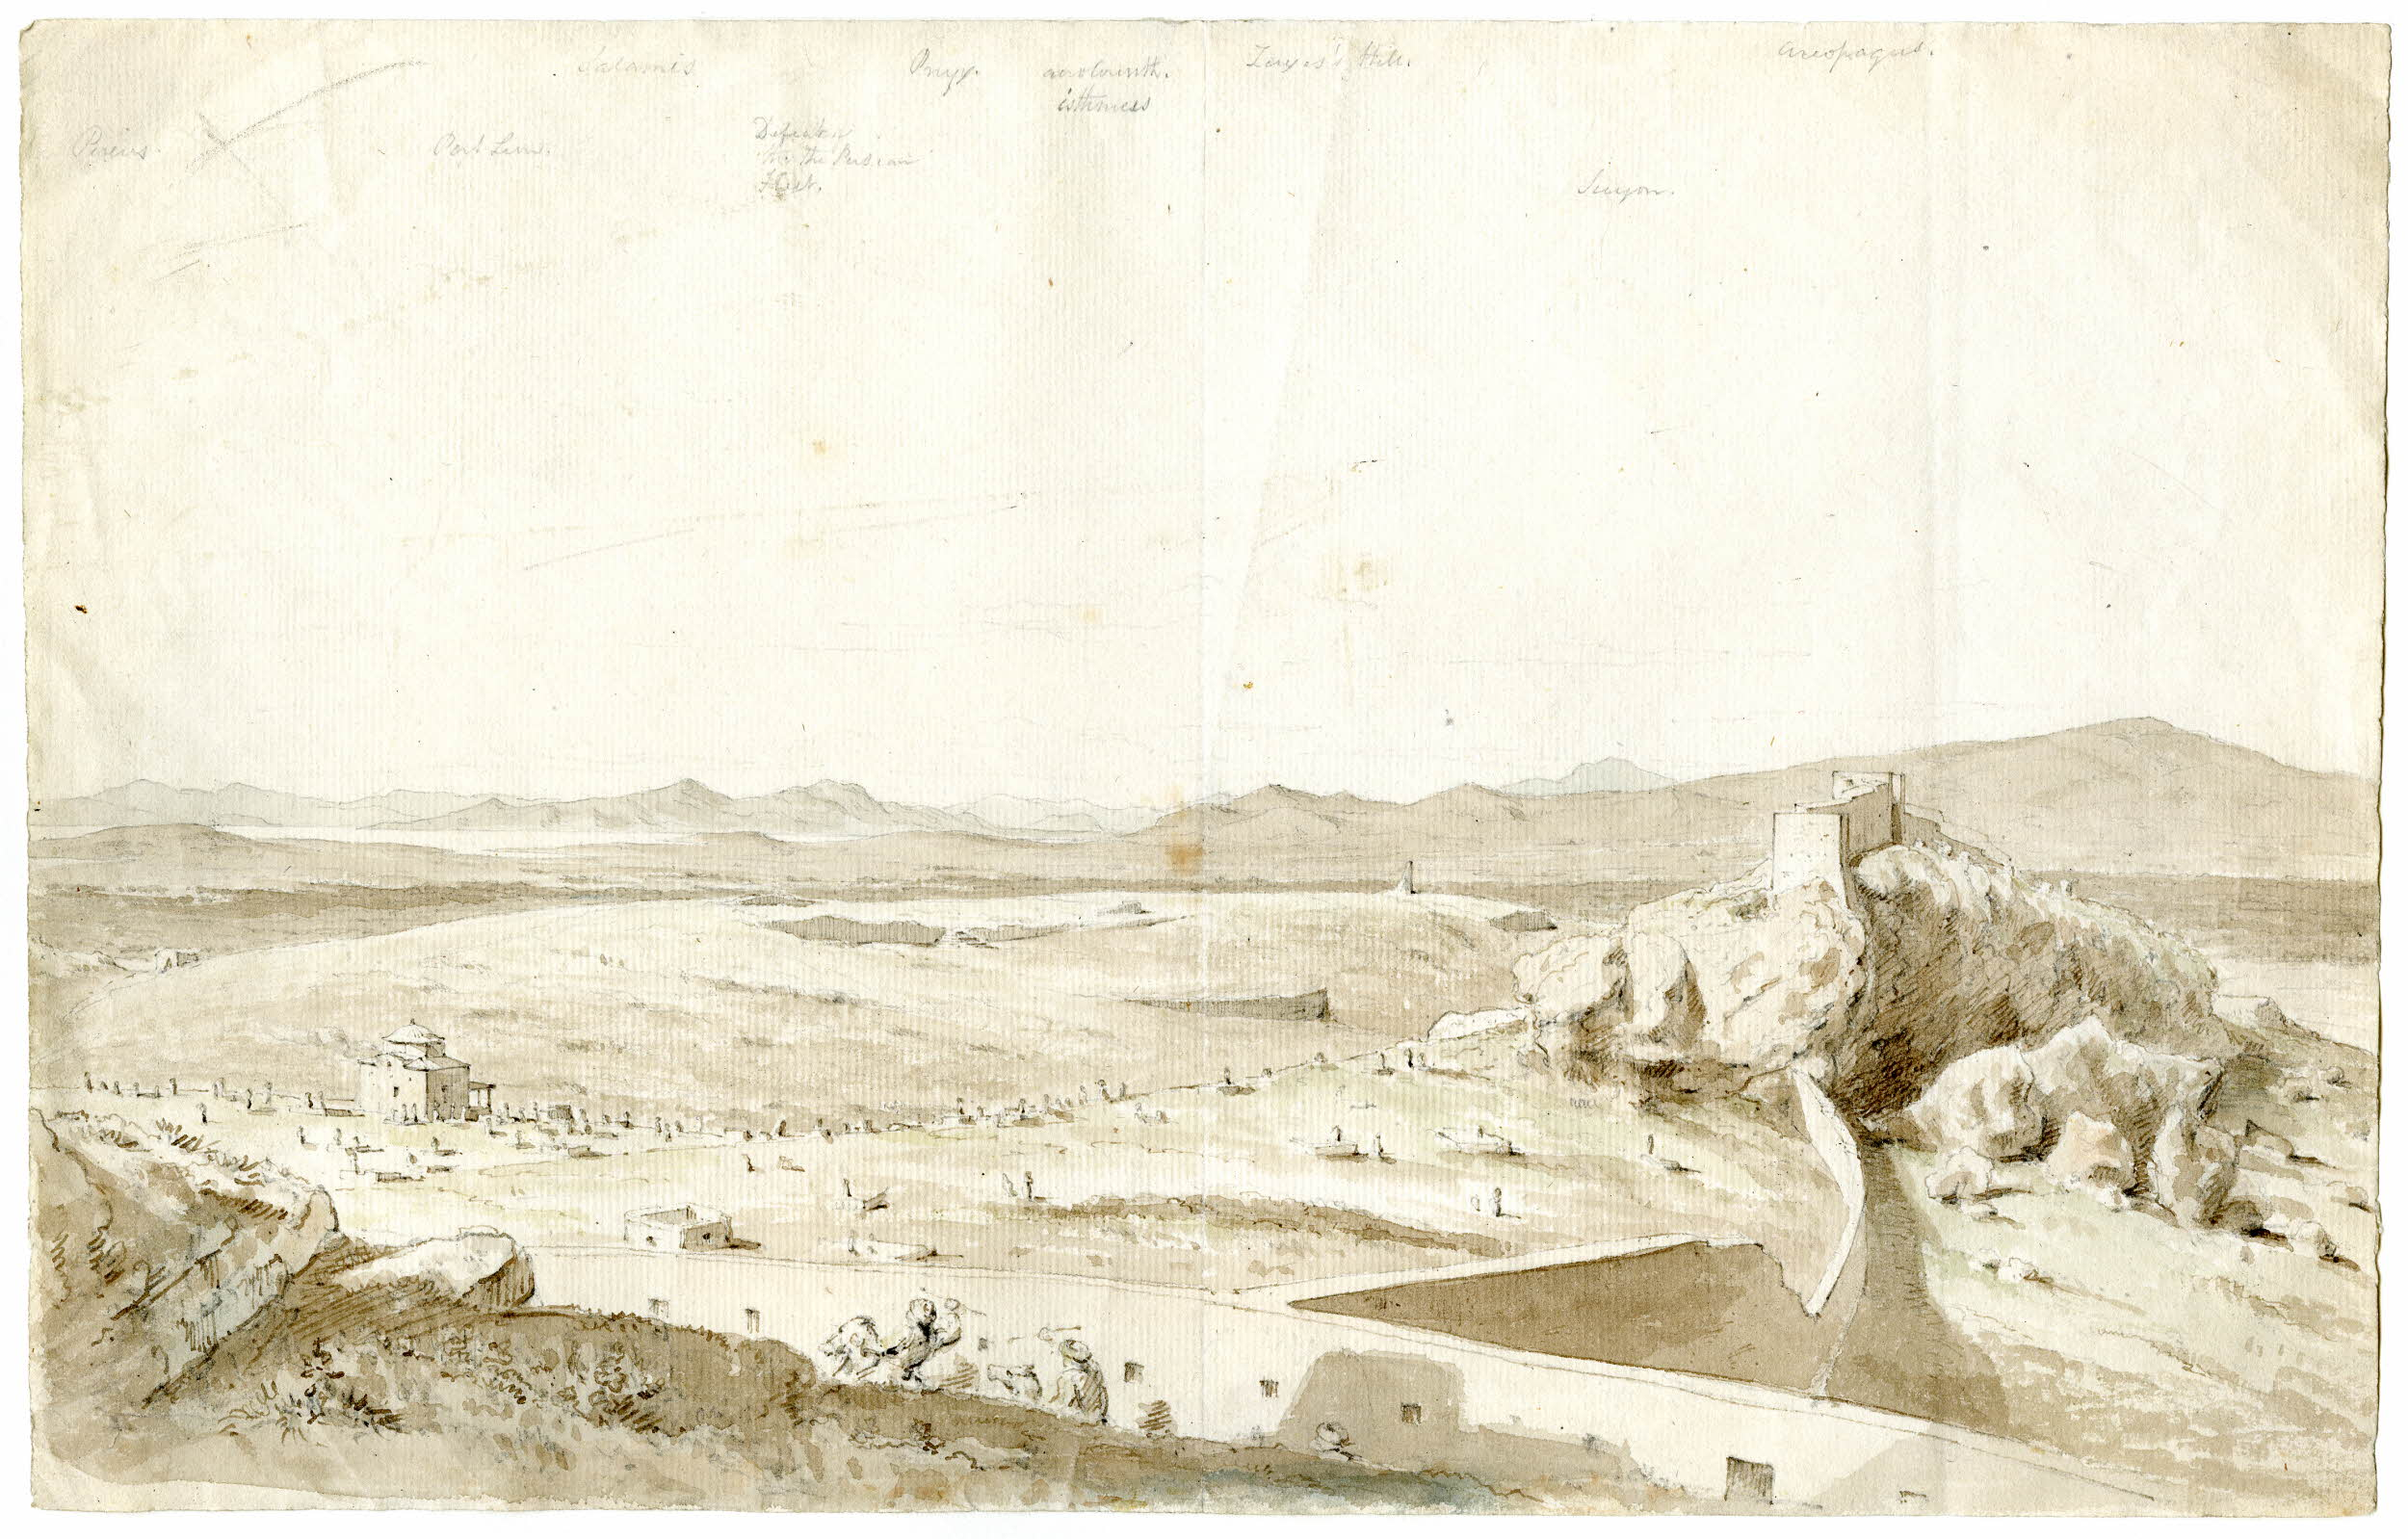 The Haseki wall (1778) connects the Castle with the Areiopagos; outside the wall, the Muslim cemetery (The British Museum).